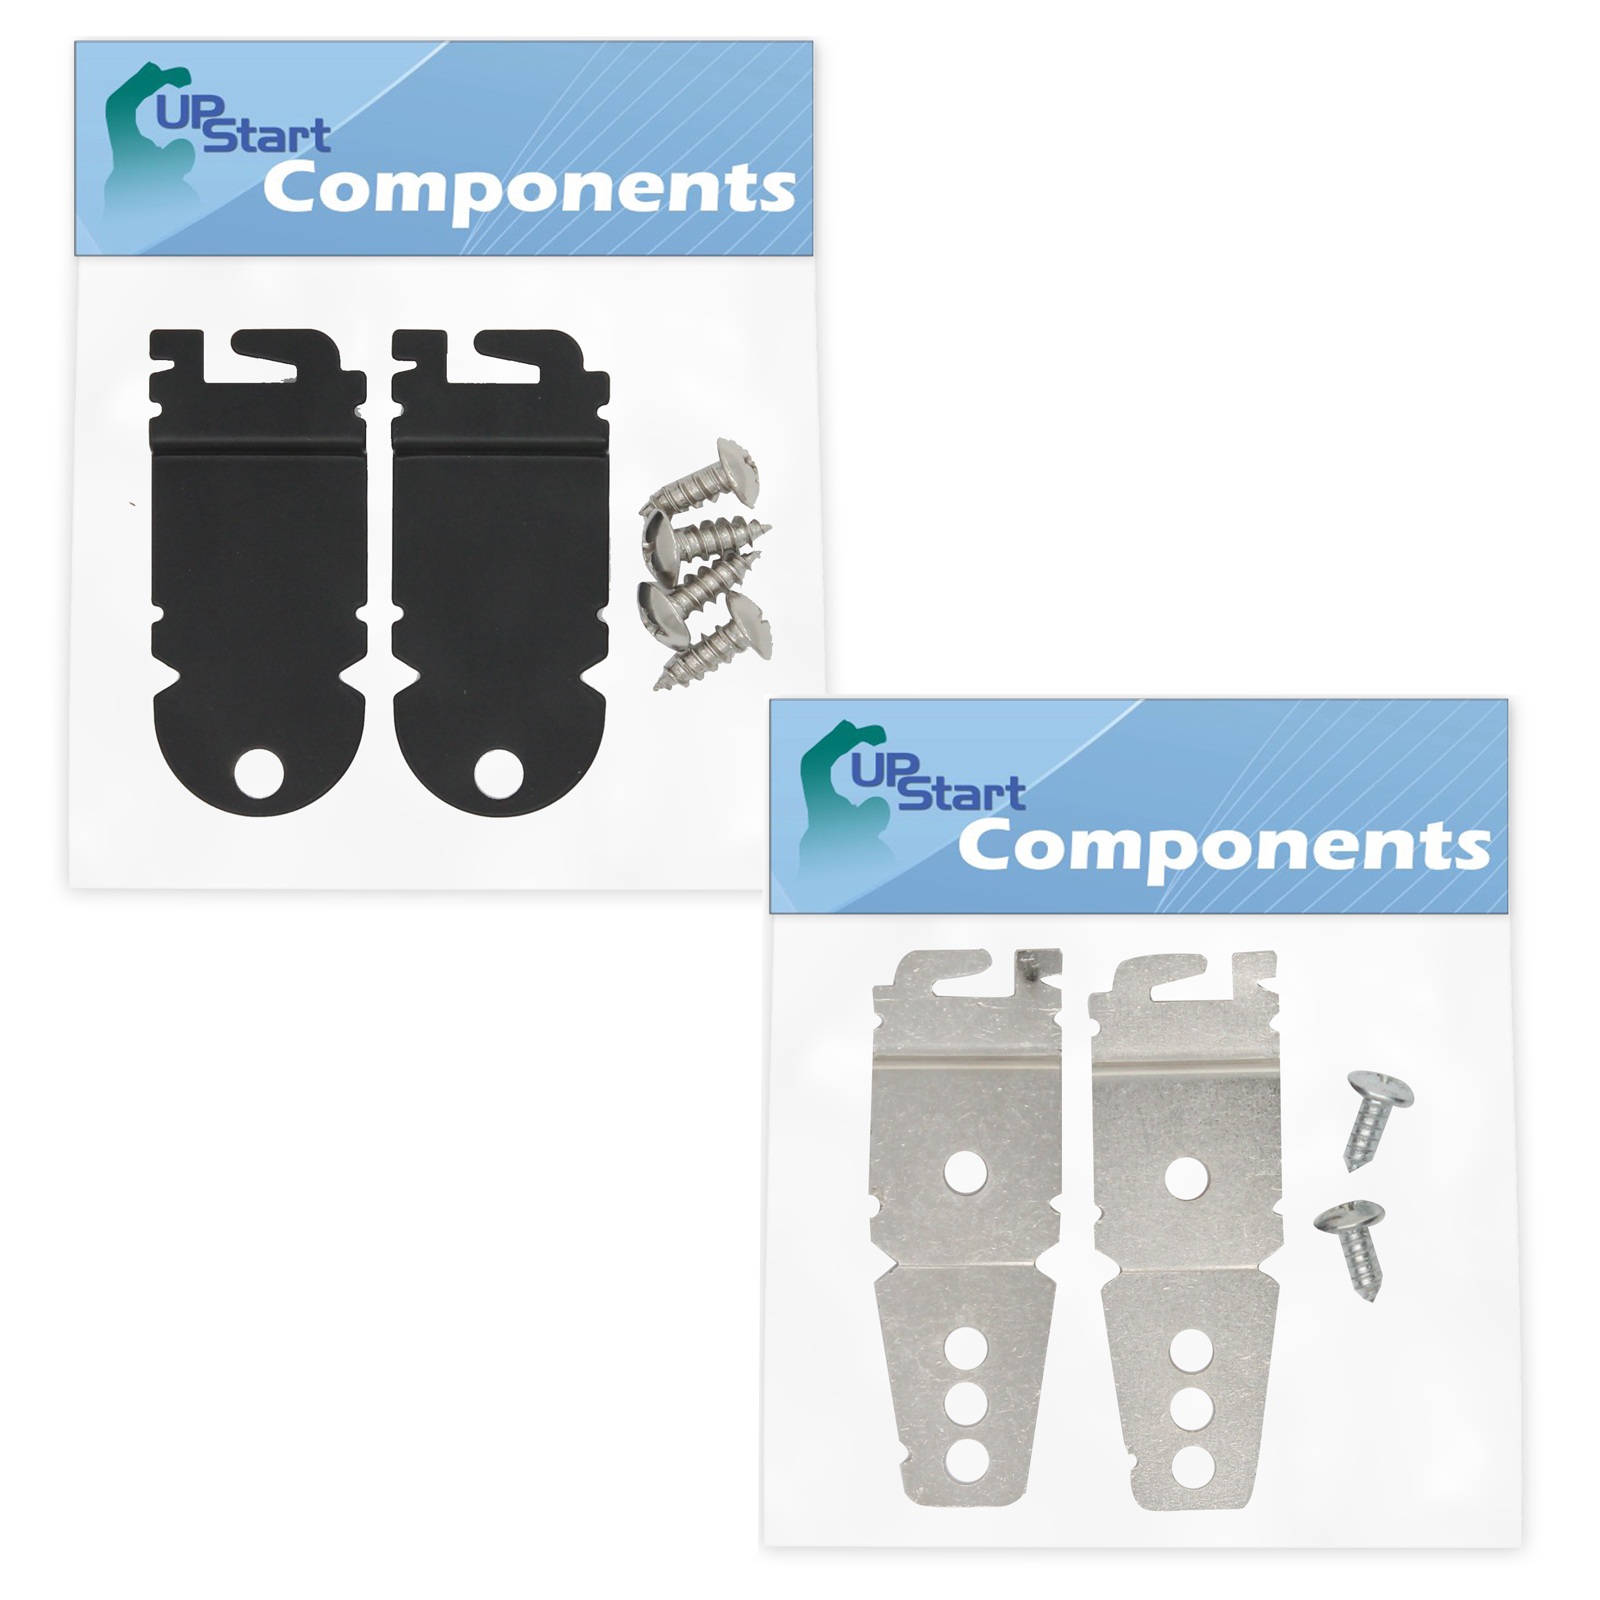 8269145 Undercounter Dishwasher Mounting Bracket Replacement for Maytag MDBH979AWB3 Dishwasher Compatible with WP8269145 Mounting Bracket UpStart Components Brand